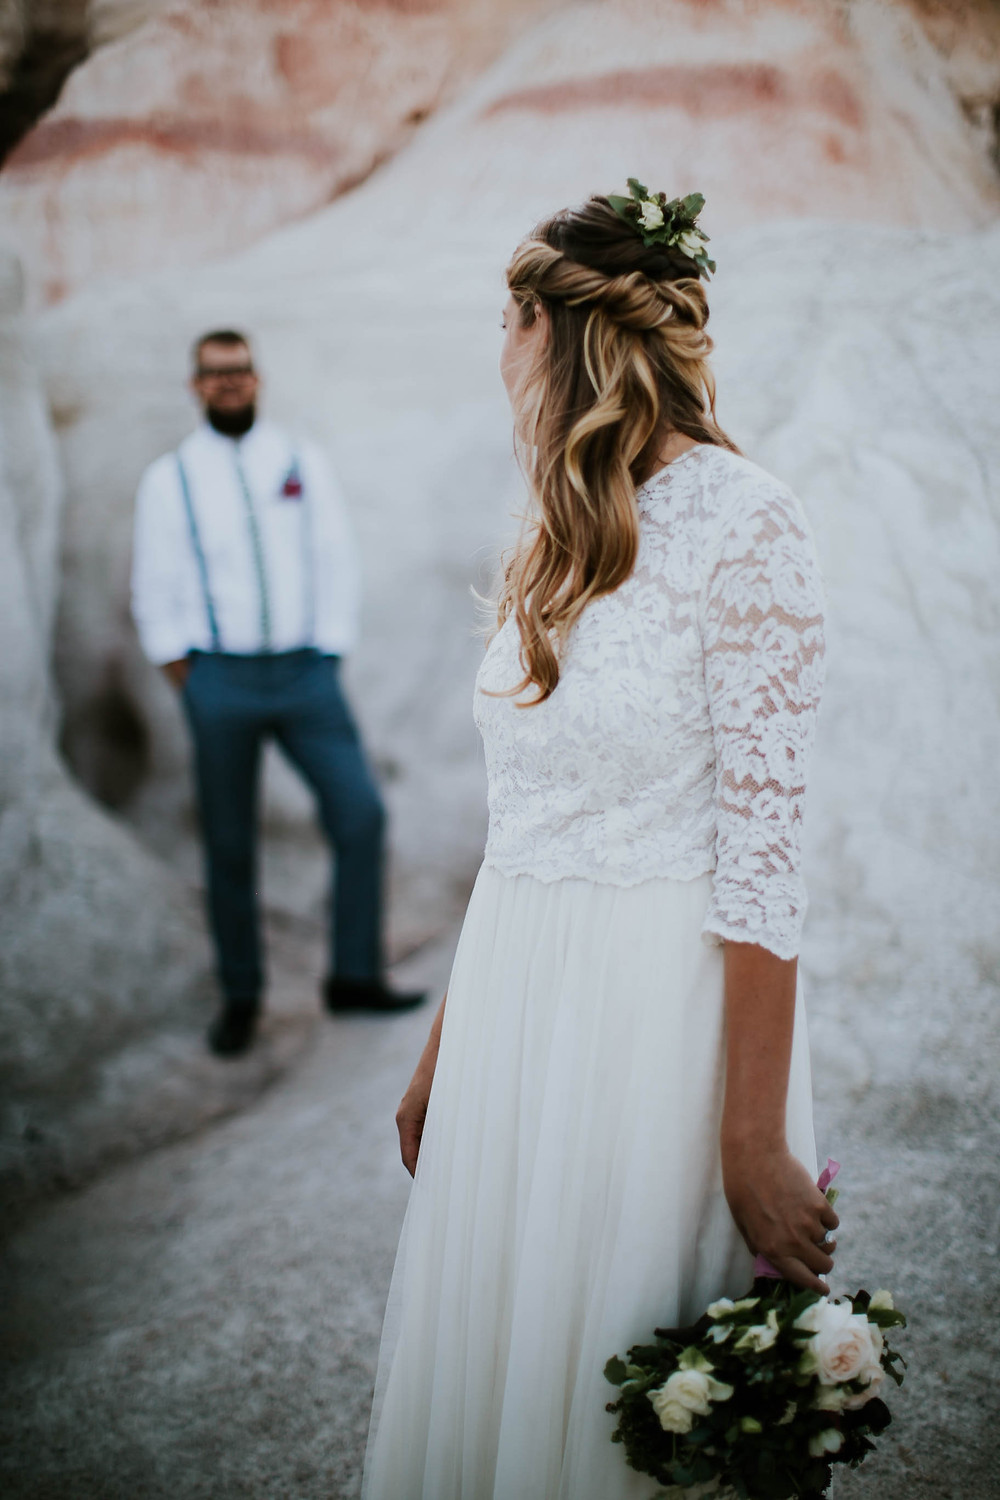 Holly Canon Travel and Lifestyle Blog Engagement Photos Ashlee Crowden Photo MJM Designs LLC Blue Bridal Boutique Rylie Meyers Wedding Hair Floral Dress Photography